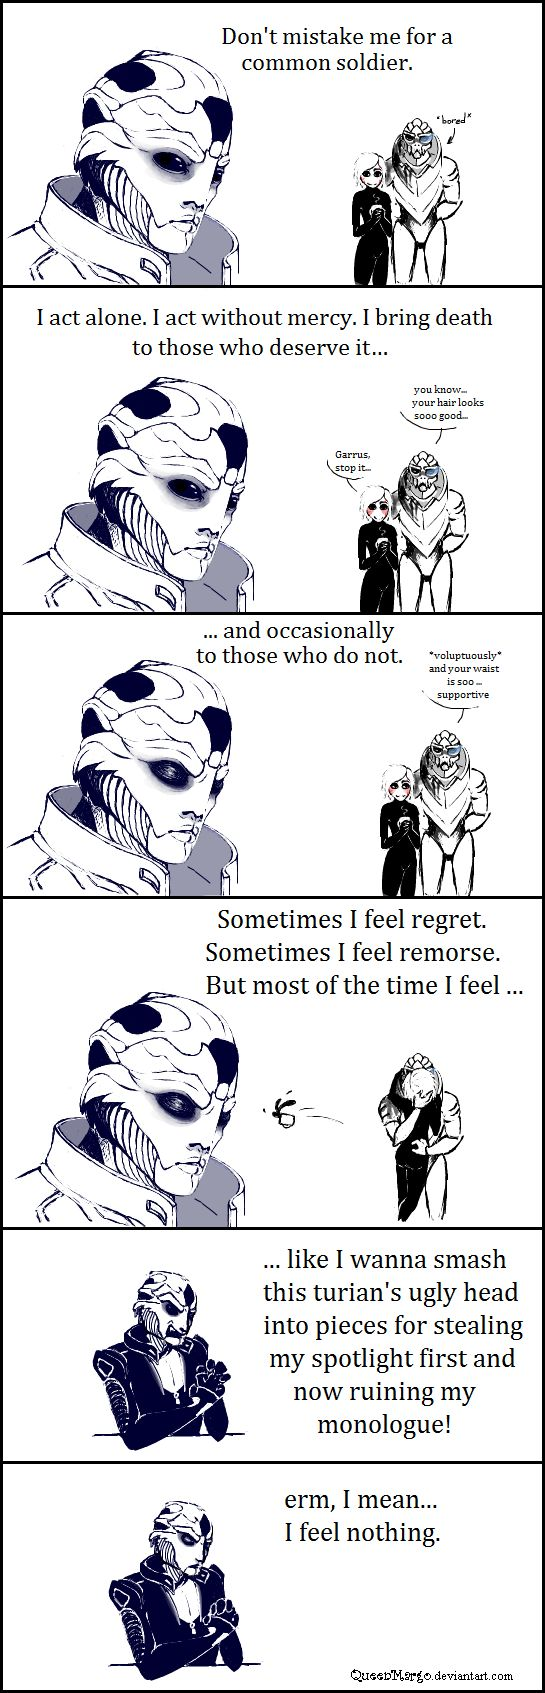 ME2: monologue by QueenMargo.deviantart.com on @deviantART... LOL!